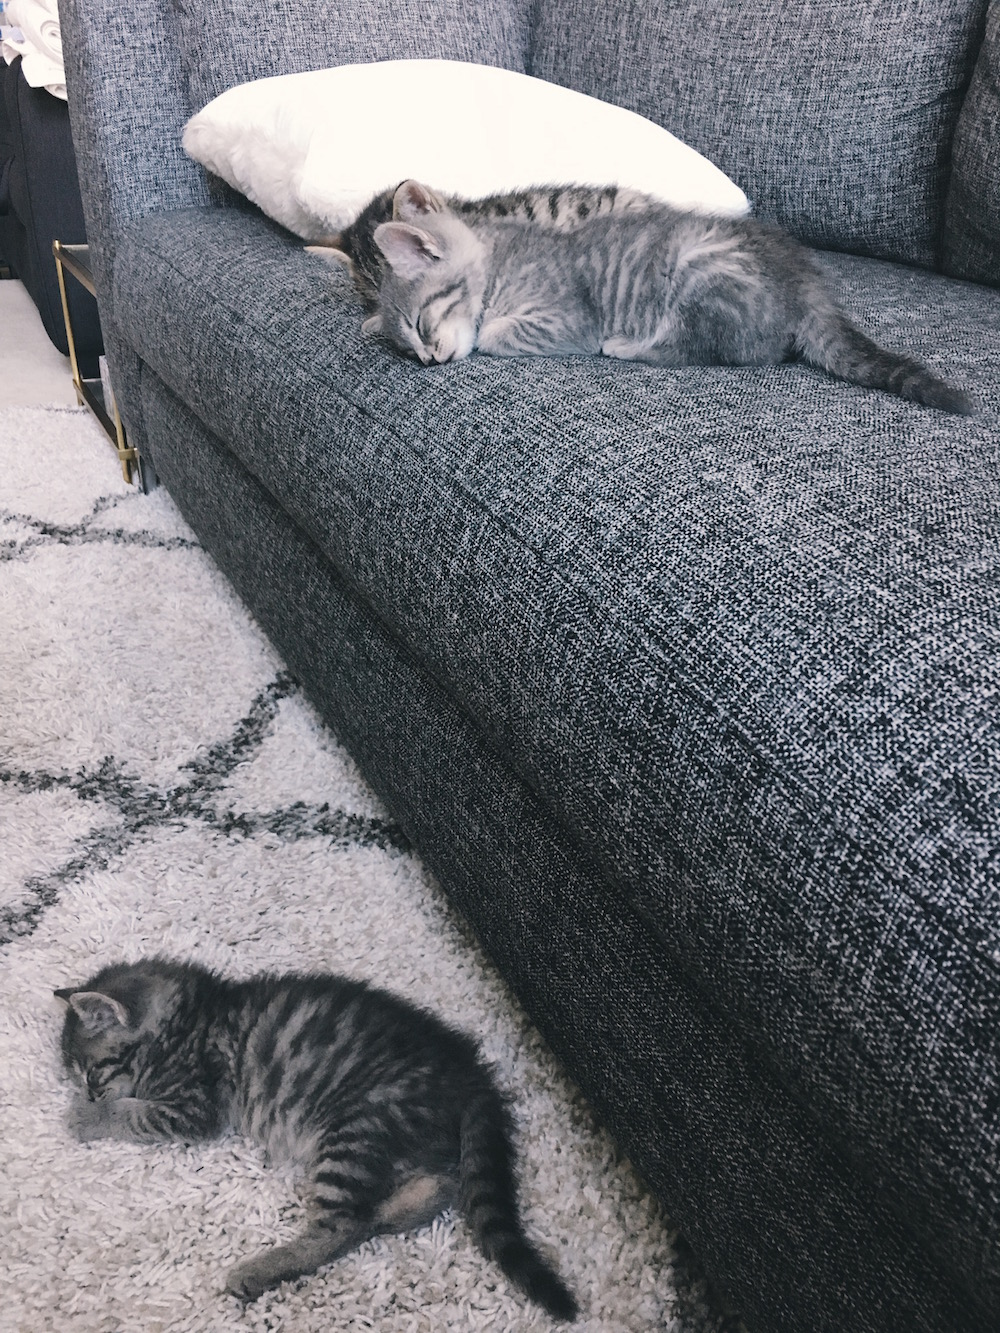 Kitten on rug and kittens on couch